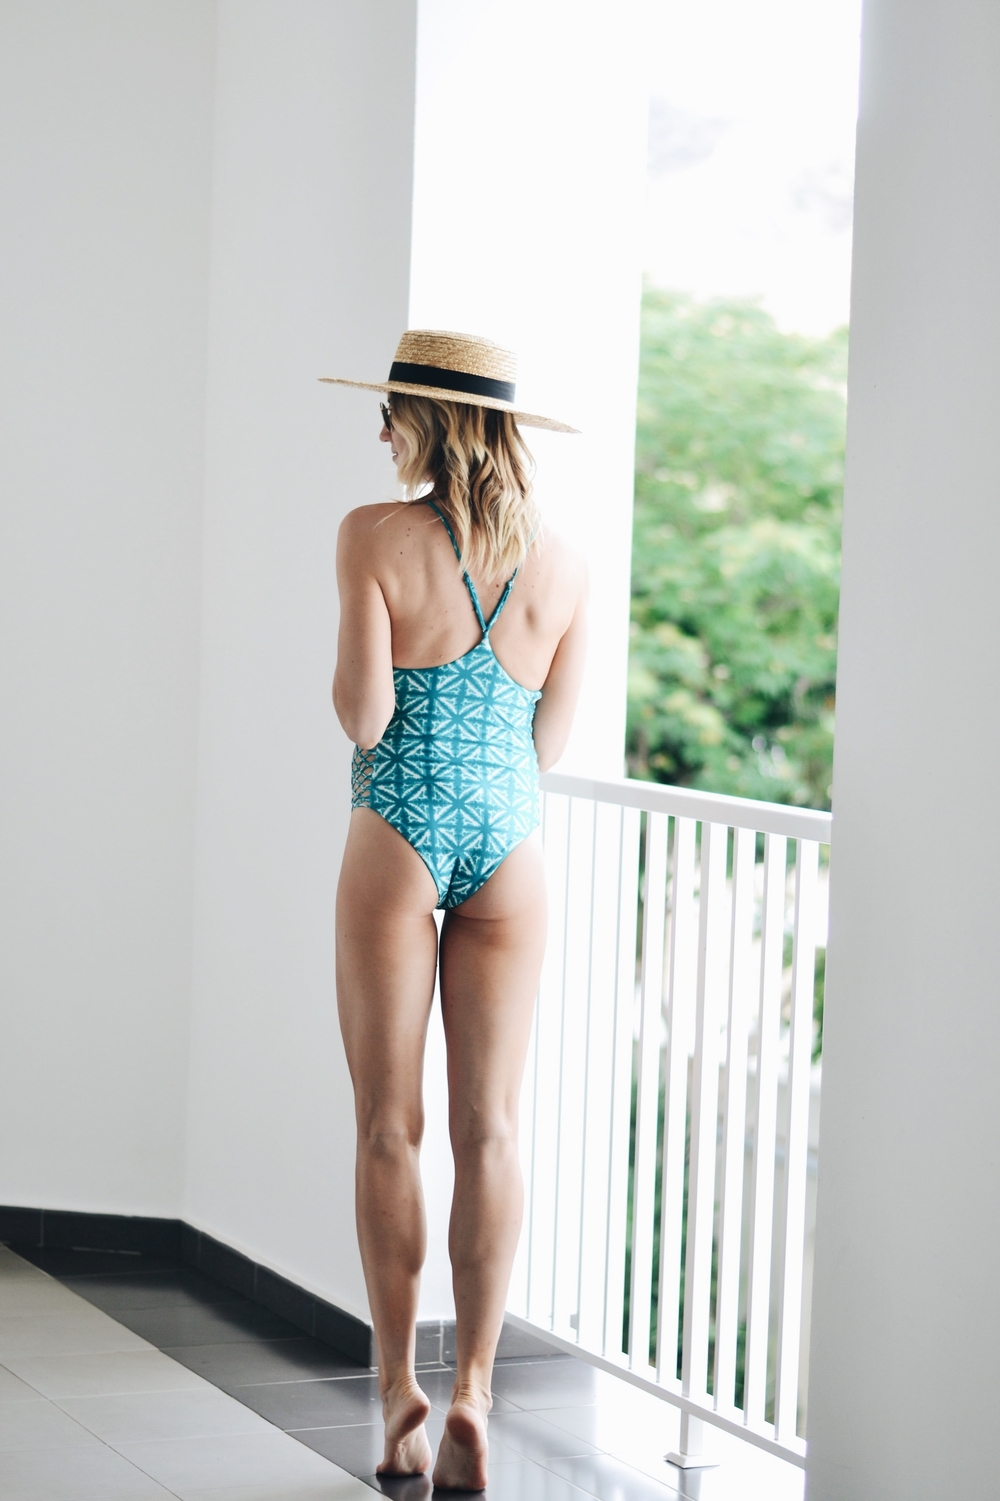 Swimsuit-AmuseSociety-Lackofcolor-Hat-Sunglasses-Rayban